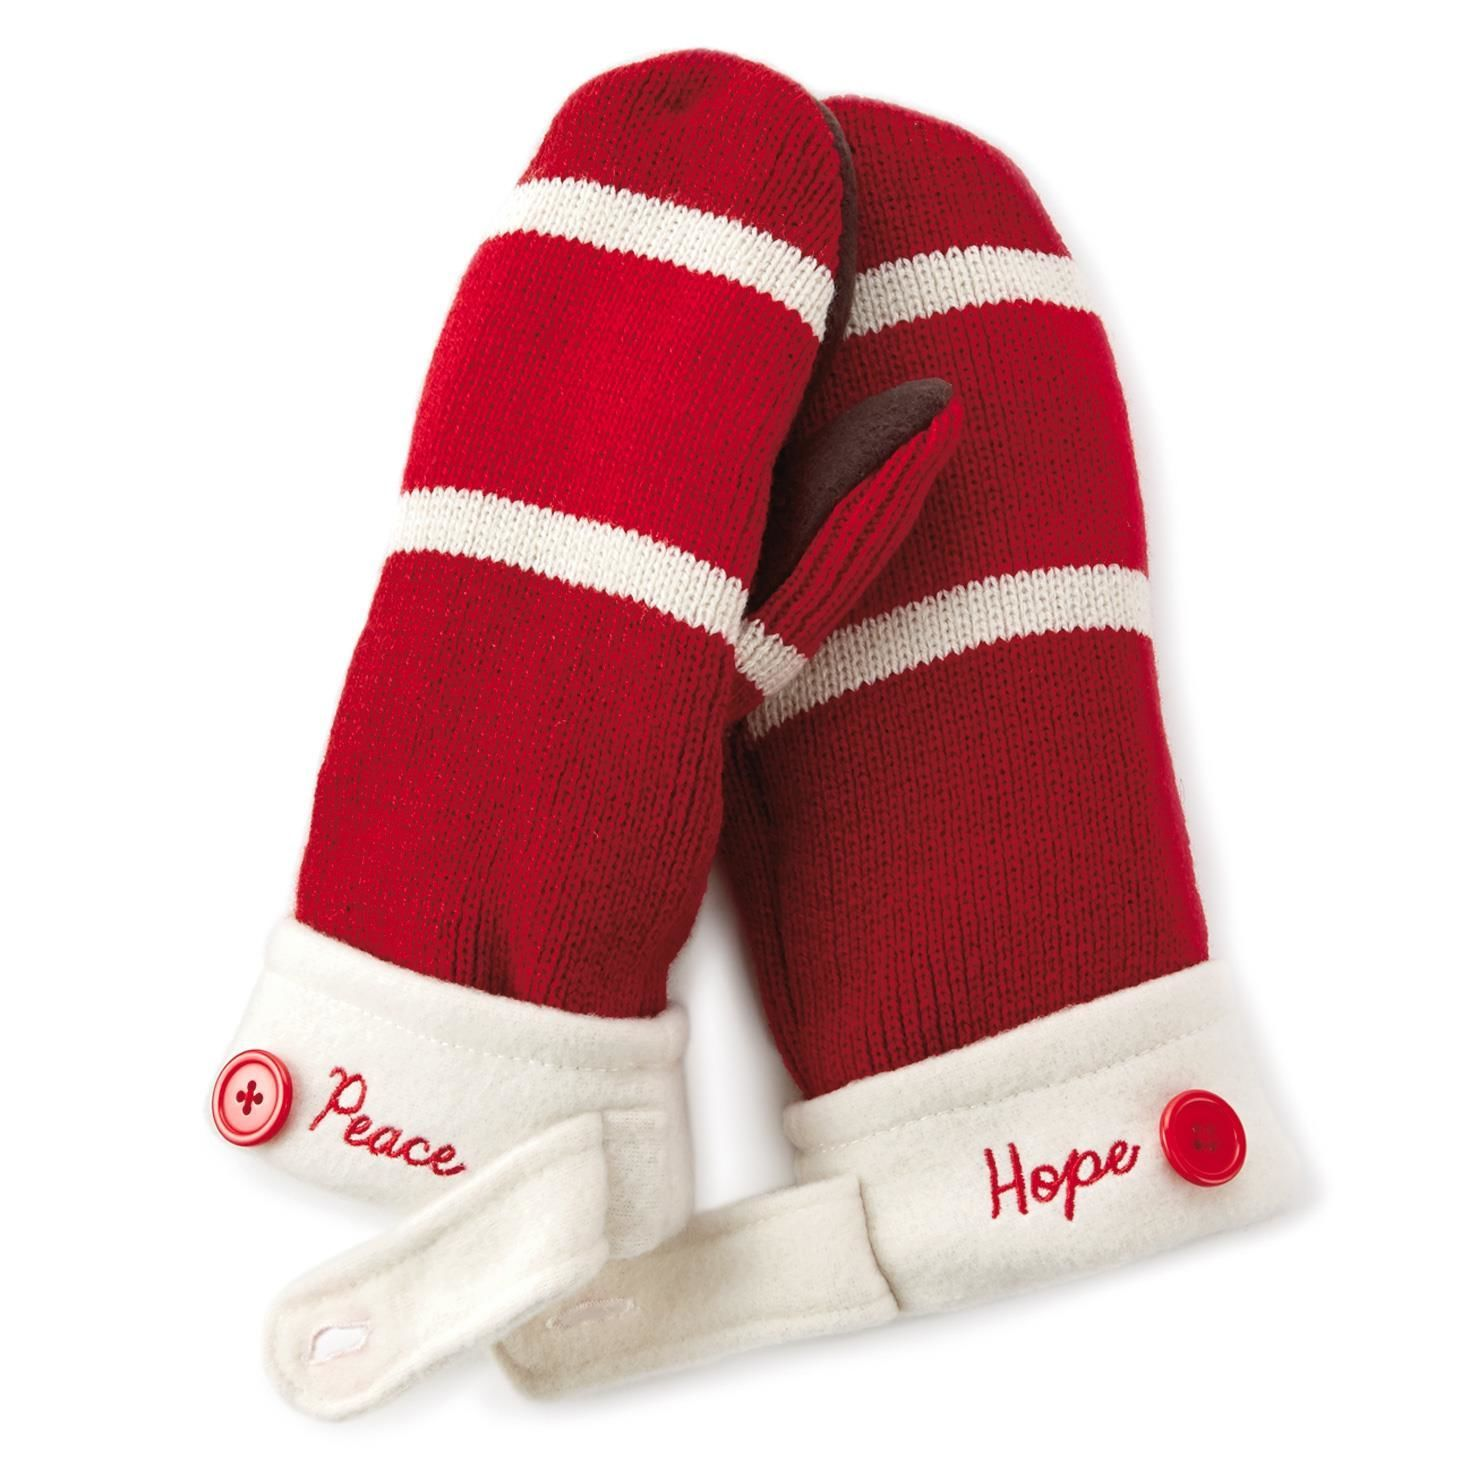 Hope and Peace Striped Holiday Mittens